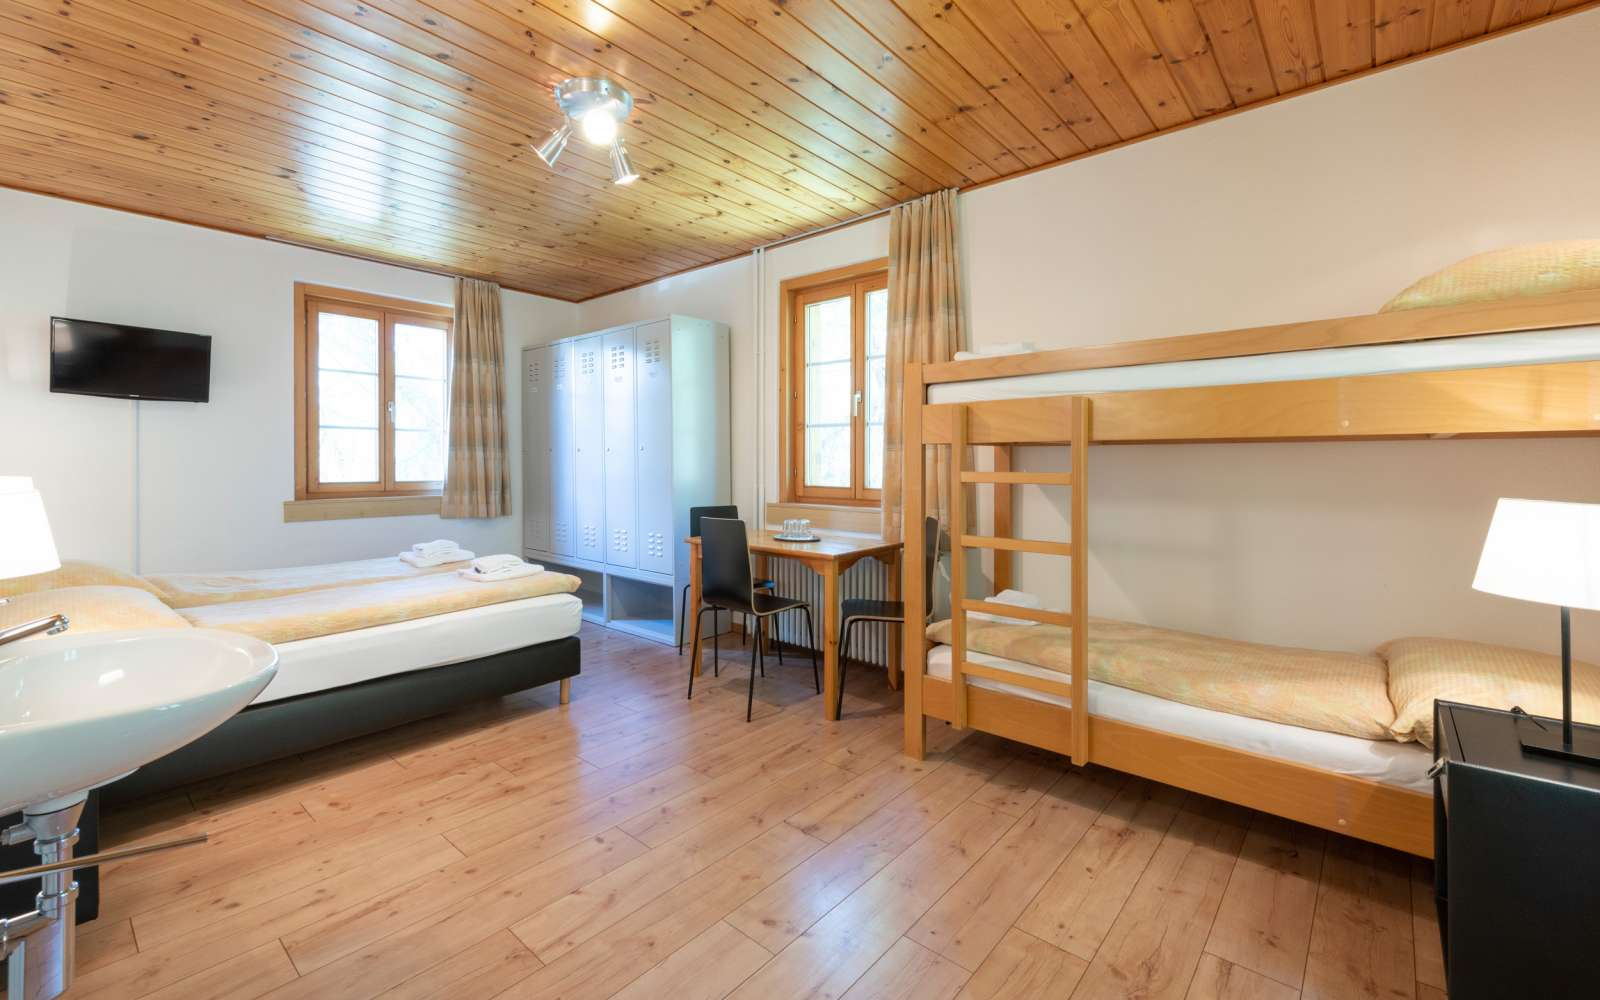 four-bed room Hostel by Randolins St. Moritz Switzerland